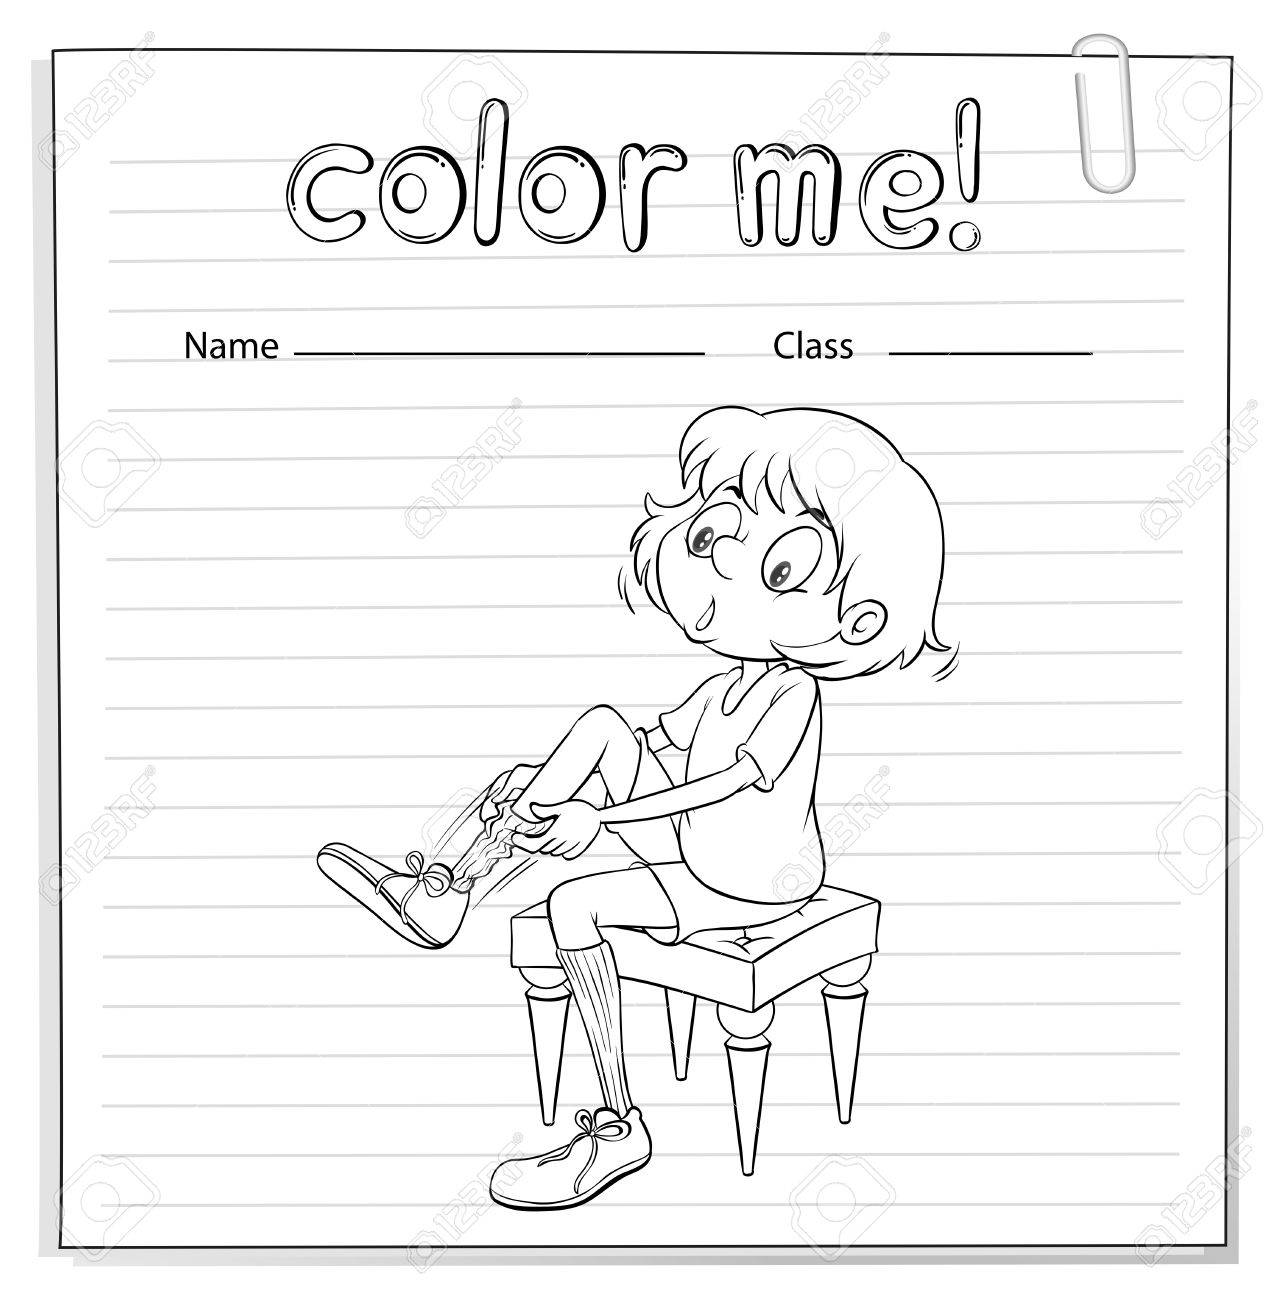 Coloring Worksheet With A Girl Pulling Her Sock On A White – Vectors Worksheet